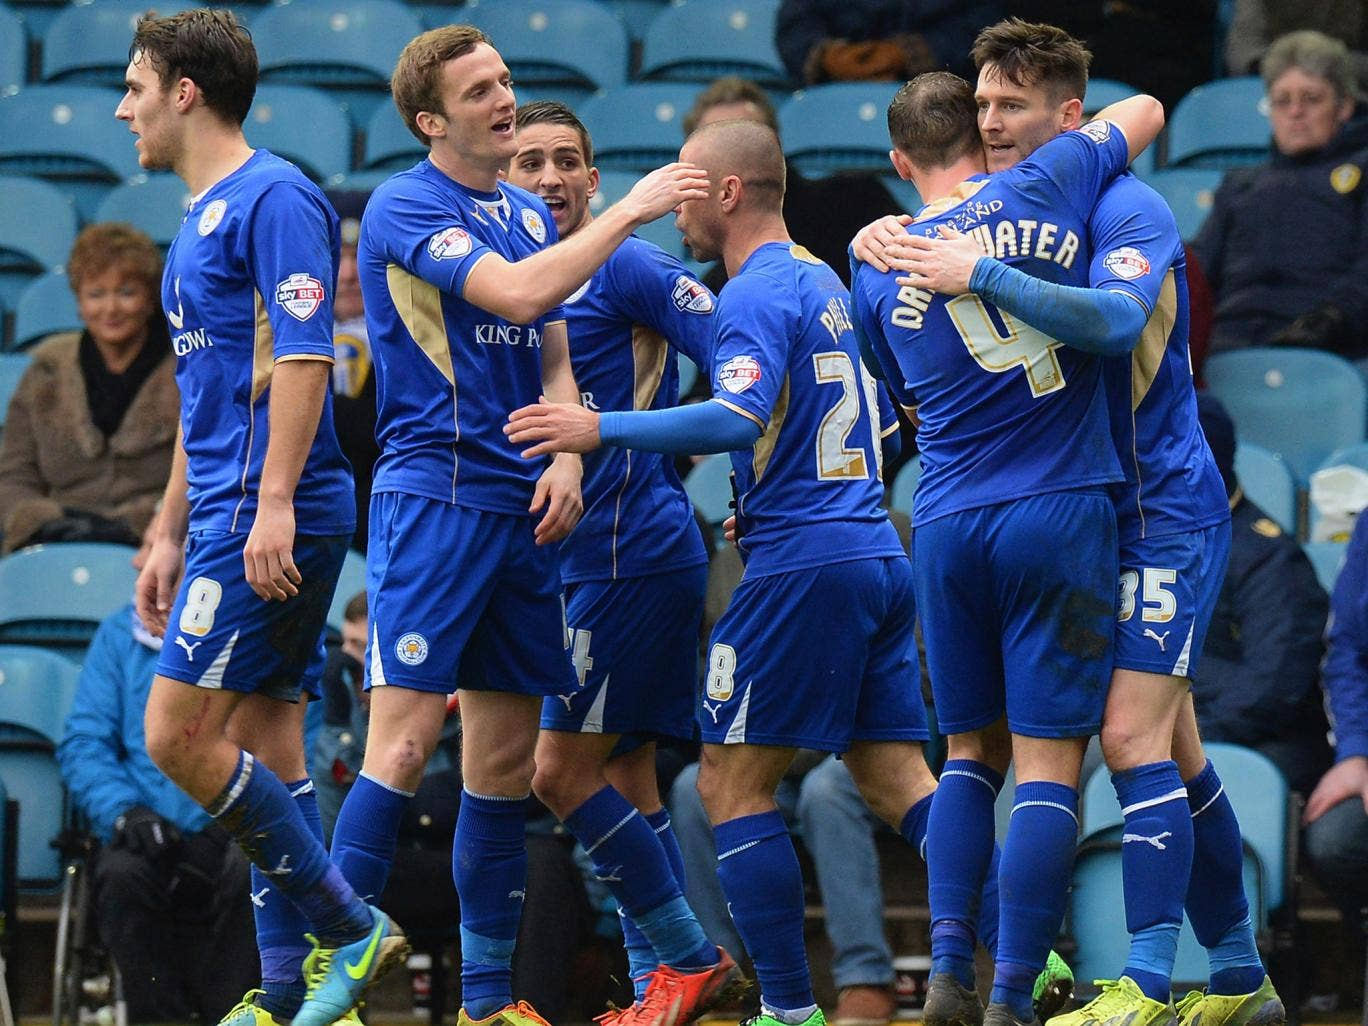 Leicester celebrate after David Nugent scores to give them a late win over Leeds